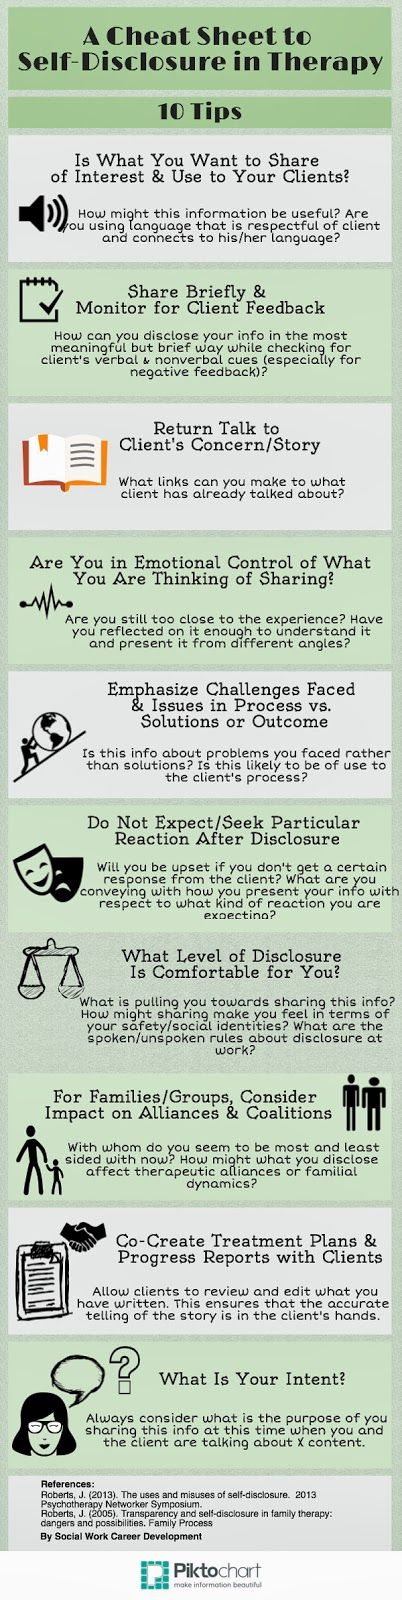 """The Art of Self-Disclosure in Therapy by Social Work Career Development < some of the key take-aways from Janine Roberts, Ed.D.'s talk about """"Therapist Self-Disclosure""""..."""